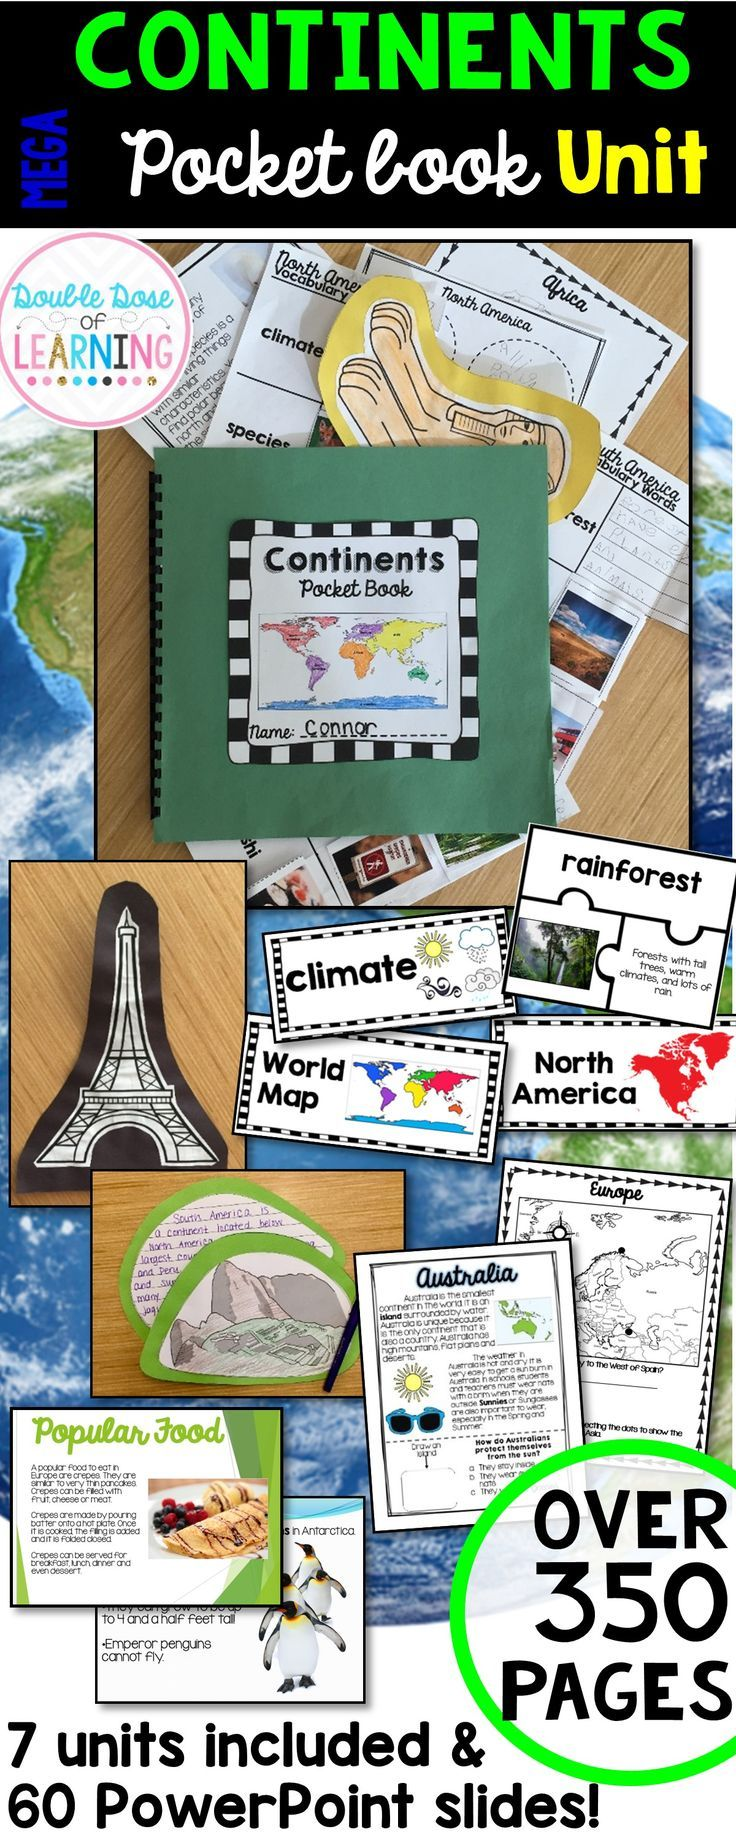 *Discovering the 7 Continents unit plan* {North America, South America, Europe, Asia, Africa, Australia and Antarctica!} Each Continent Includes:  *How to Use page with daily activities. *PowerPoint Presentation *Student Workbook with comprehension questions: 4 pages *Colorful vocabulary cards *Definitions for Vocabulary words *Vocabulary word flip book with pictures *Graphic Organizer *Interactive map of continent worksheet *Writing paper *Photos for an Anchor Chart *Smart Art writing…